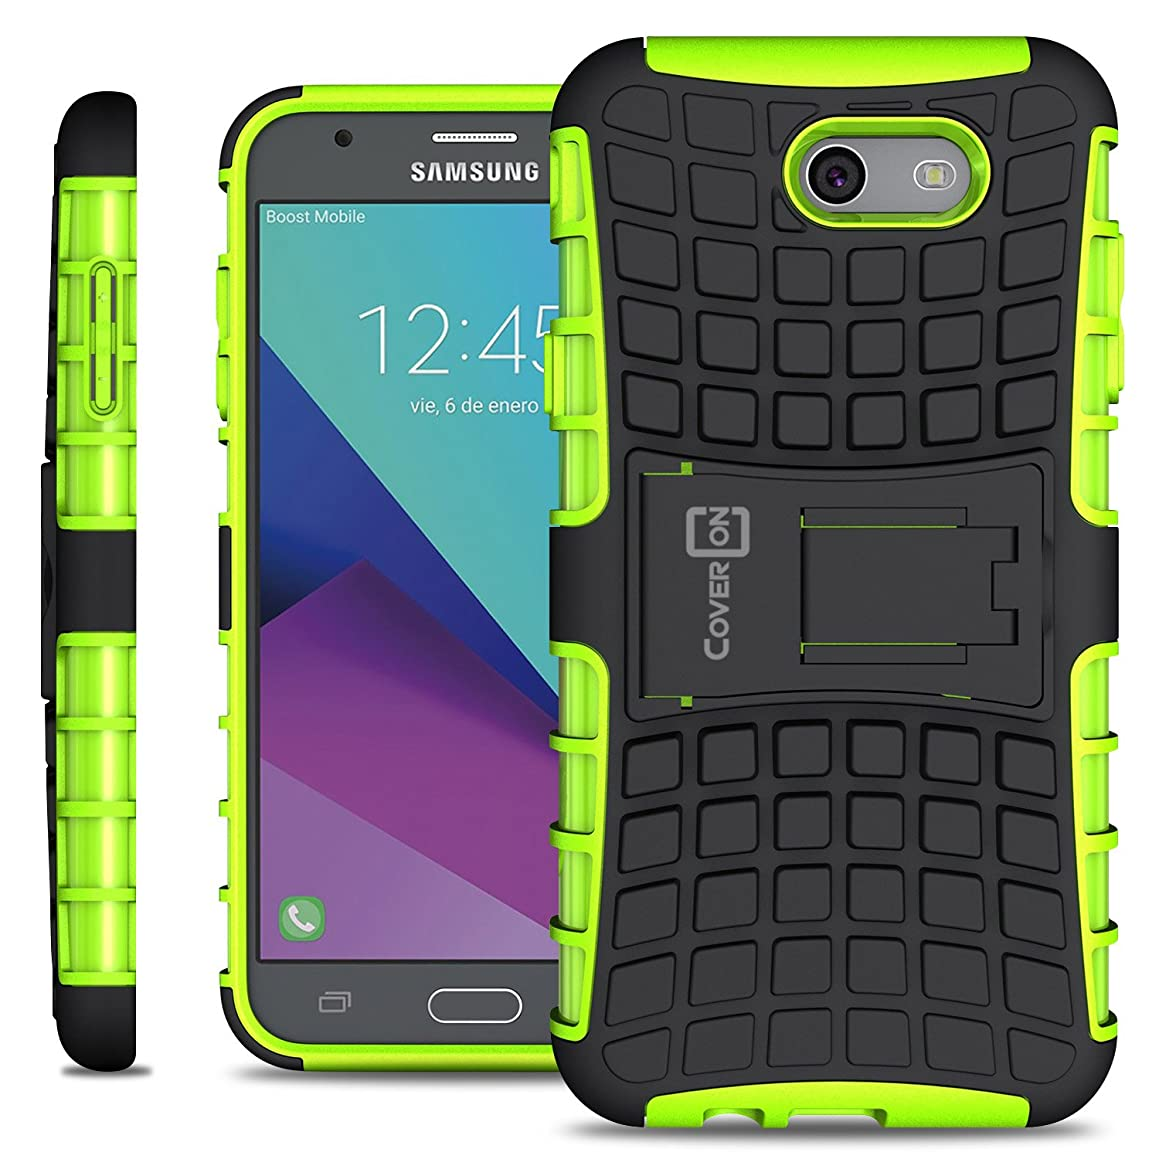 Galaxy J7 Prime Case, Galaxy J7 Sky Pro Case, Galaxy Halo Case, CoverON Atomic Series Hybrid Kickstand Protective Dual Layer Hard Phone Cover - Green on Black